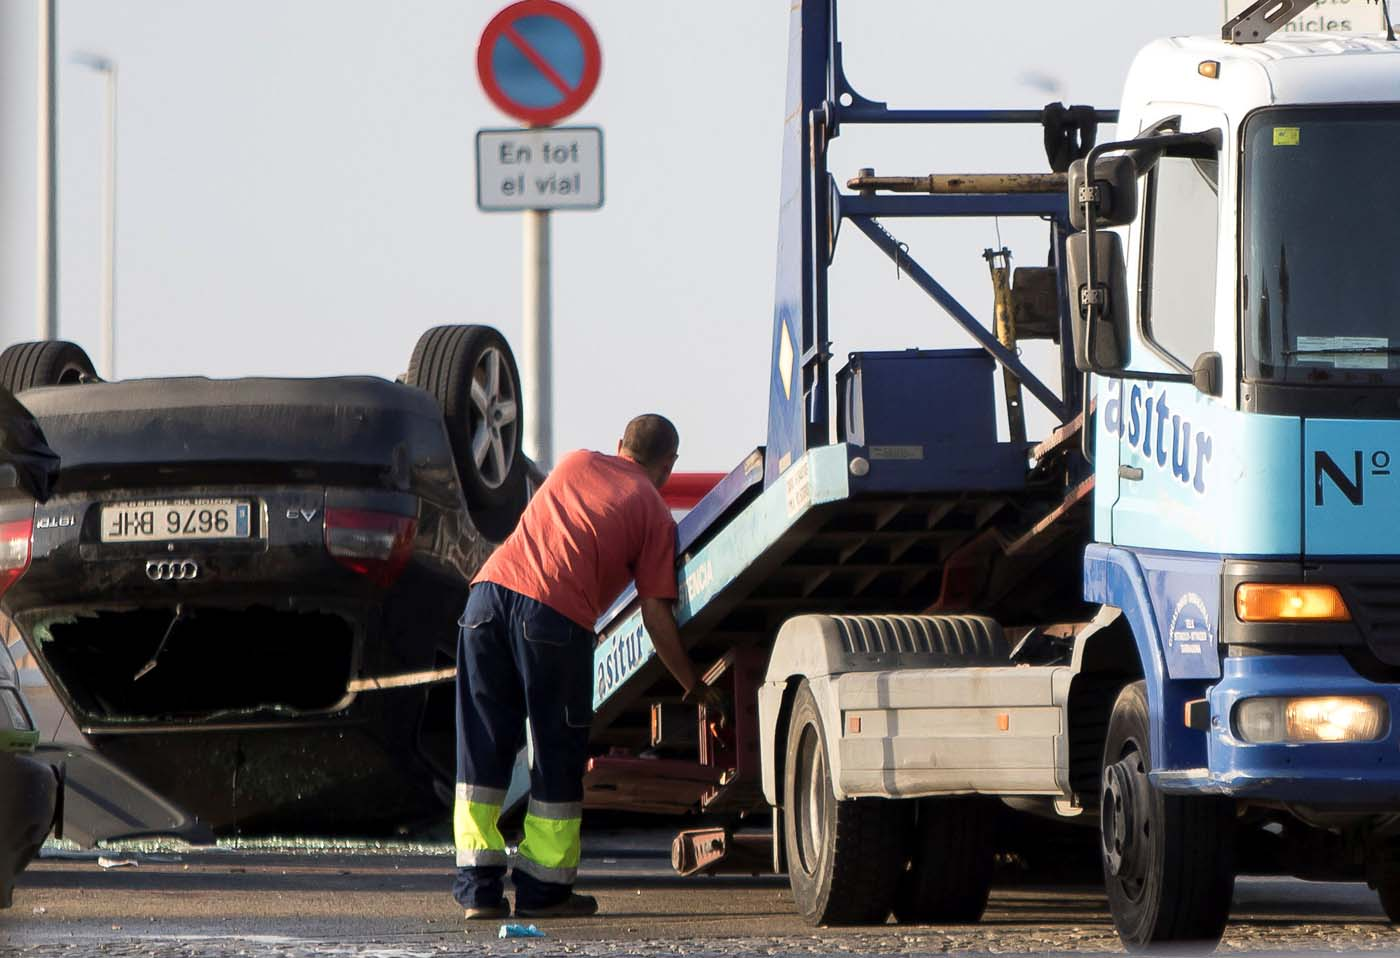 A worker loads a car on a tow truck where the police investigate the scene of an attack in Cambrils, south of Barcelona, Spain, August 18, 2017. REUTERS/Stringer NO RESALES. NO ARCHIVES